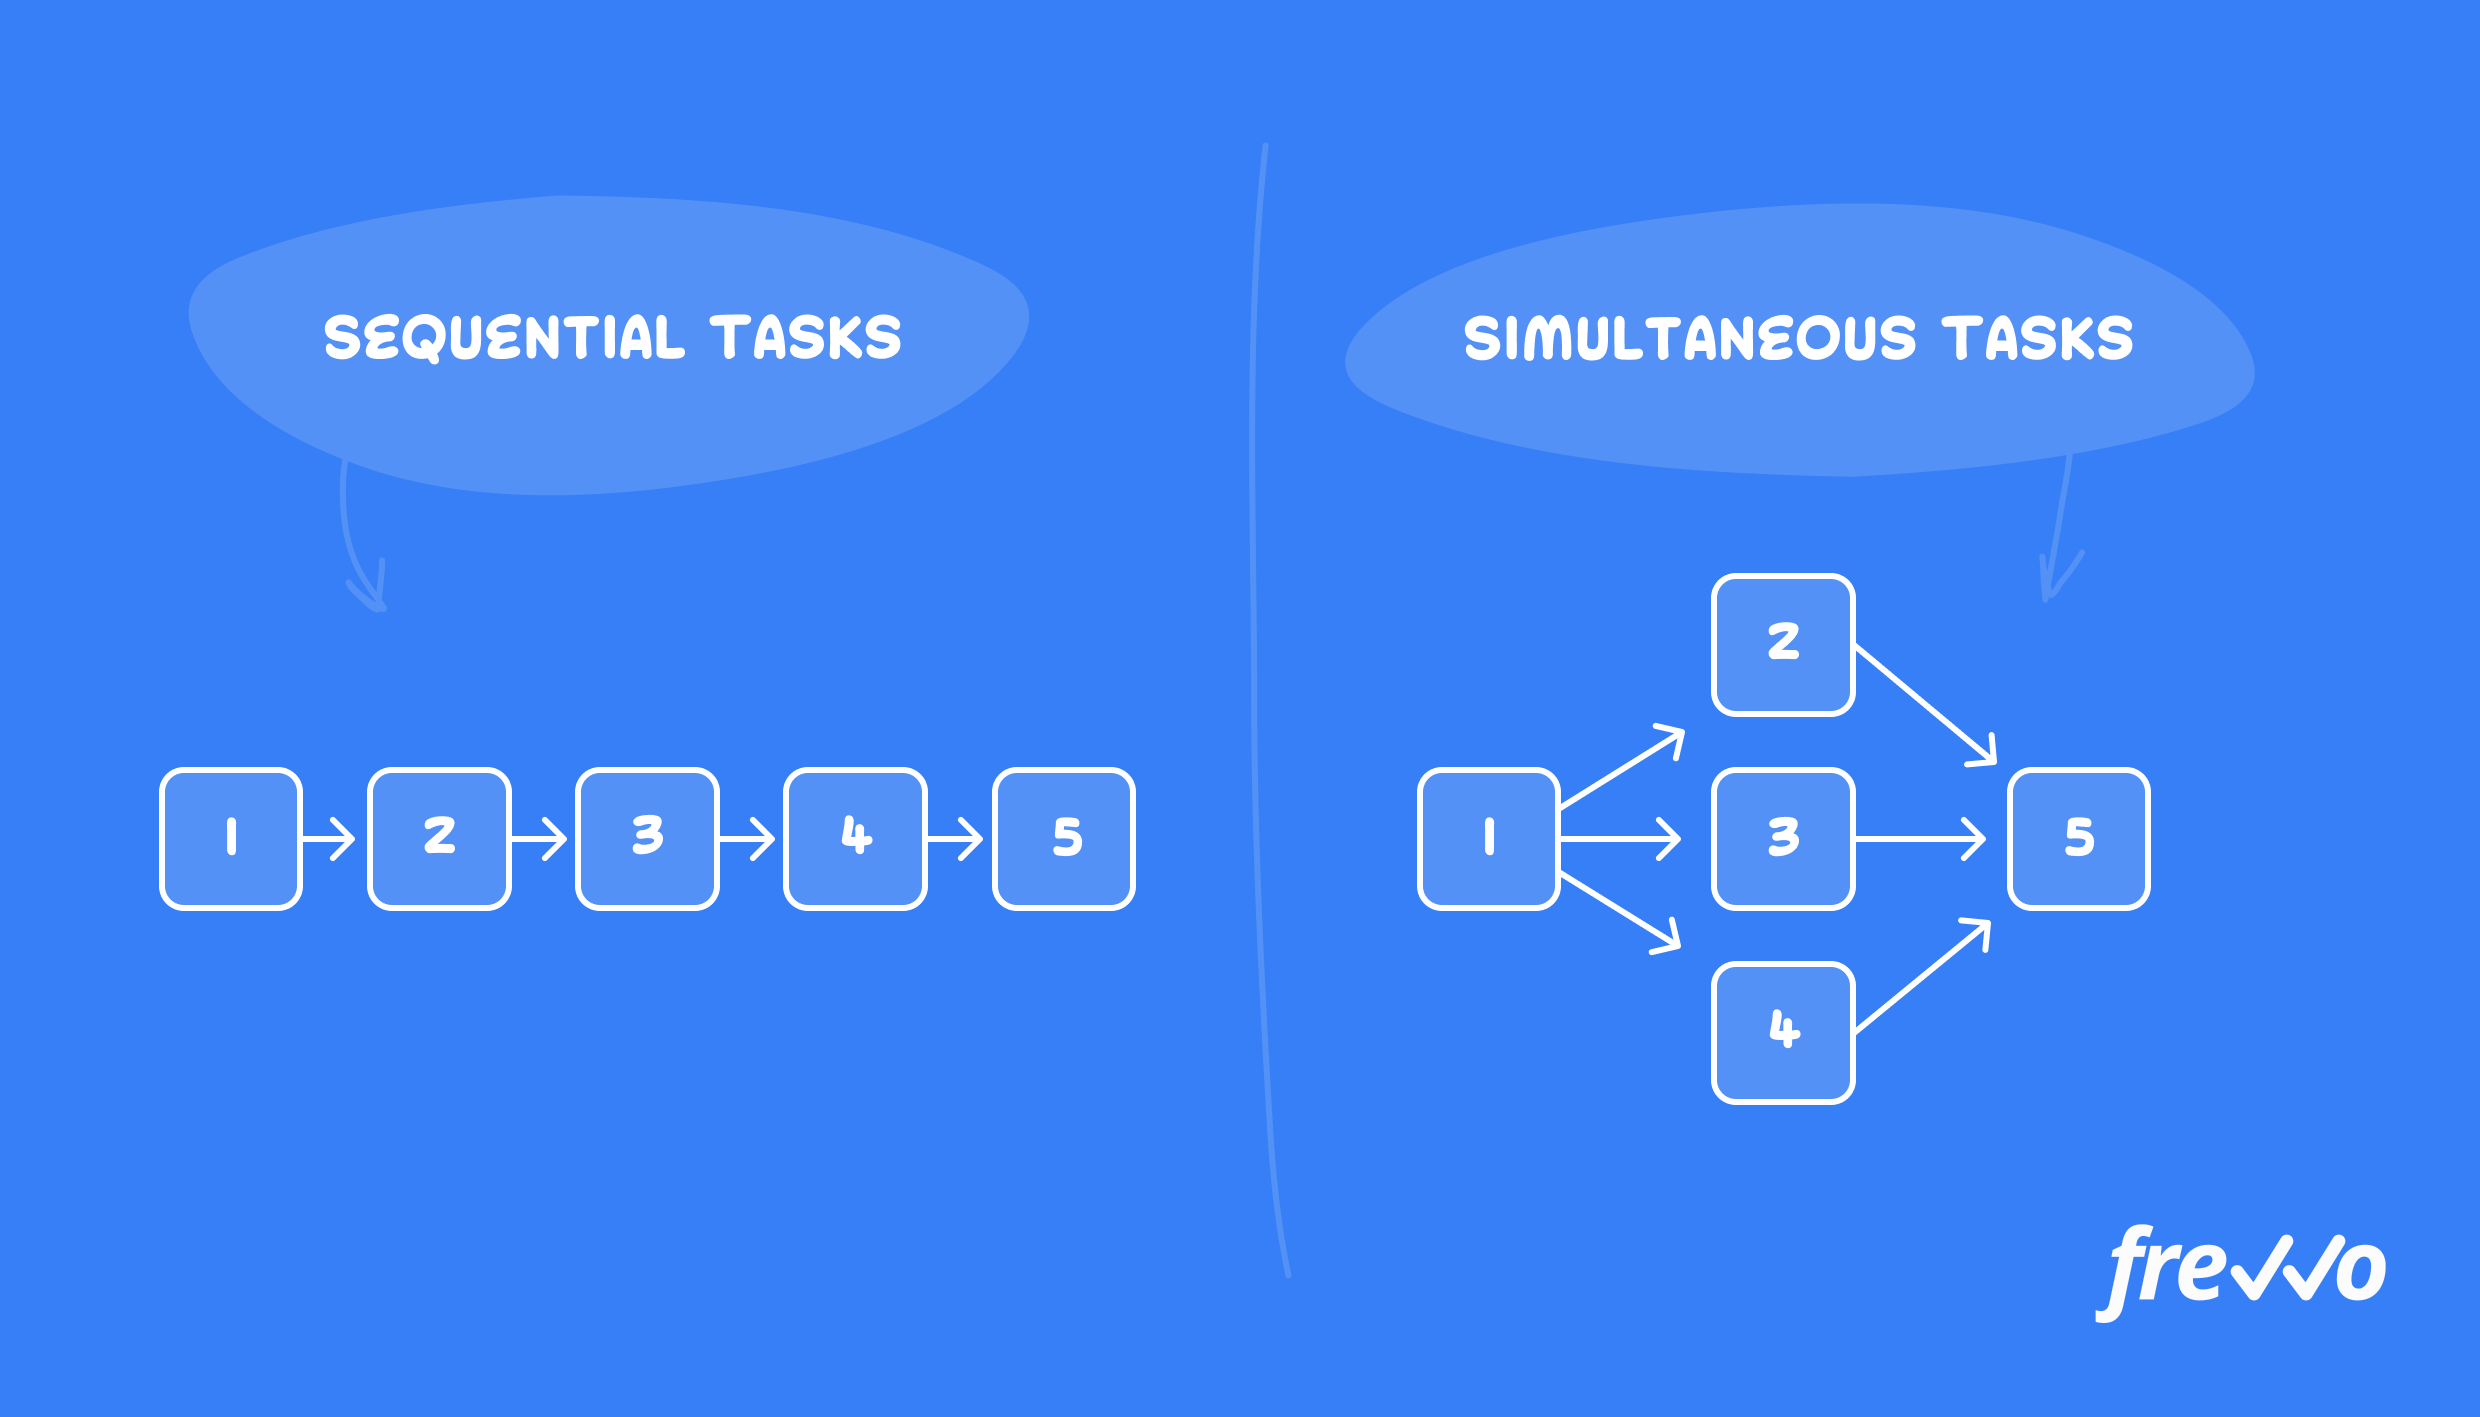 Distinguishing between sequential and simultaneous tasks